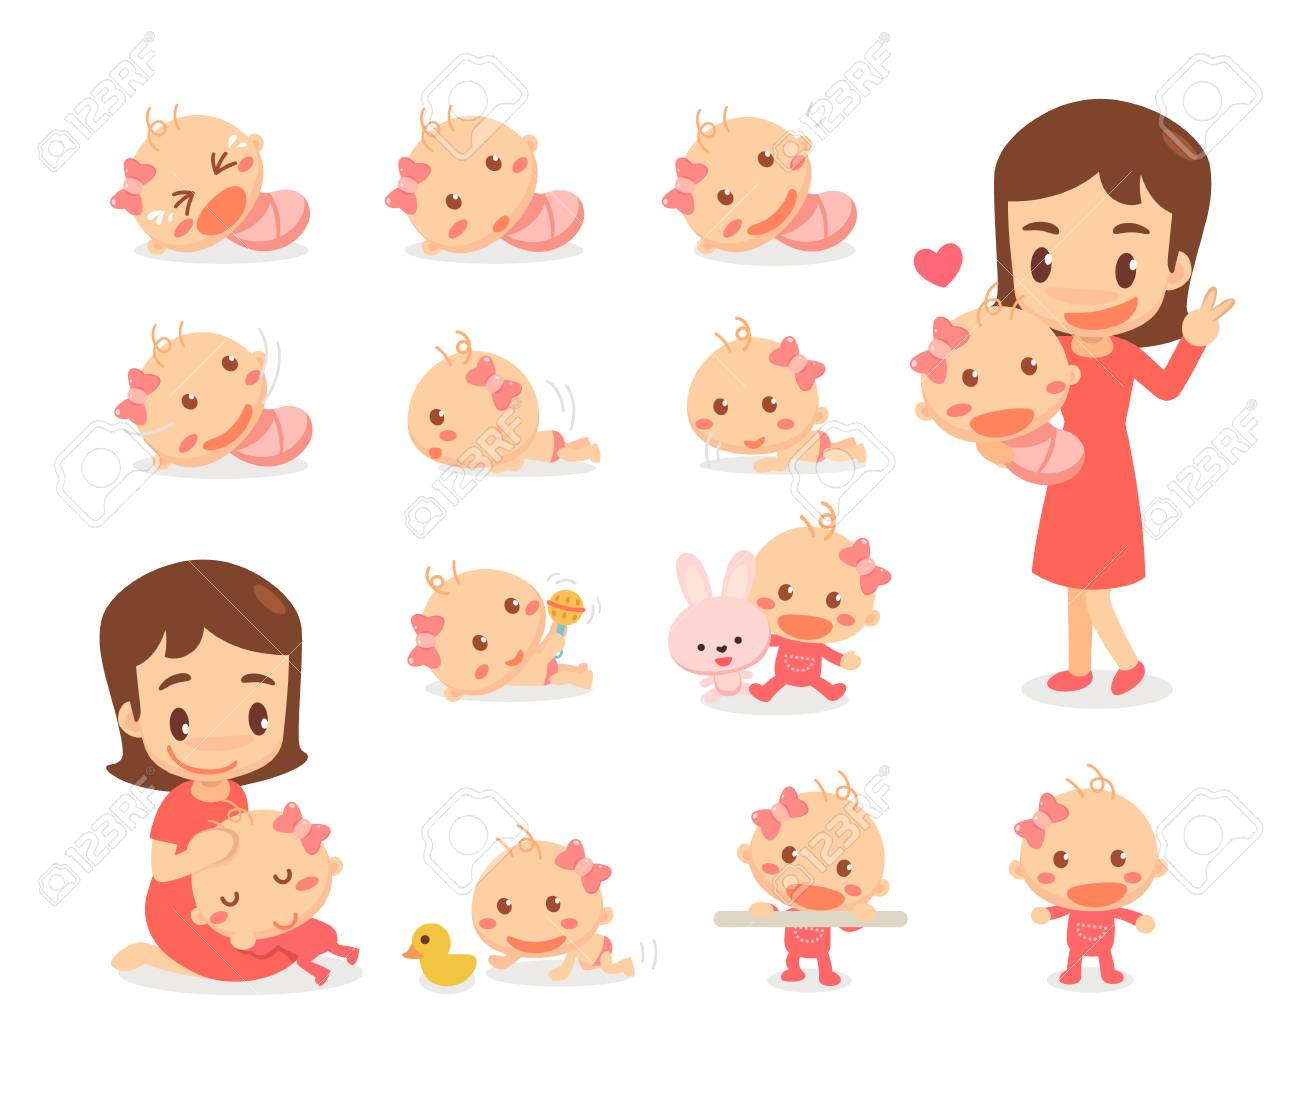 Mom and baby girl. Baby development stages. Baby milestones. - 126244383